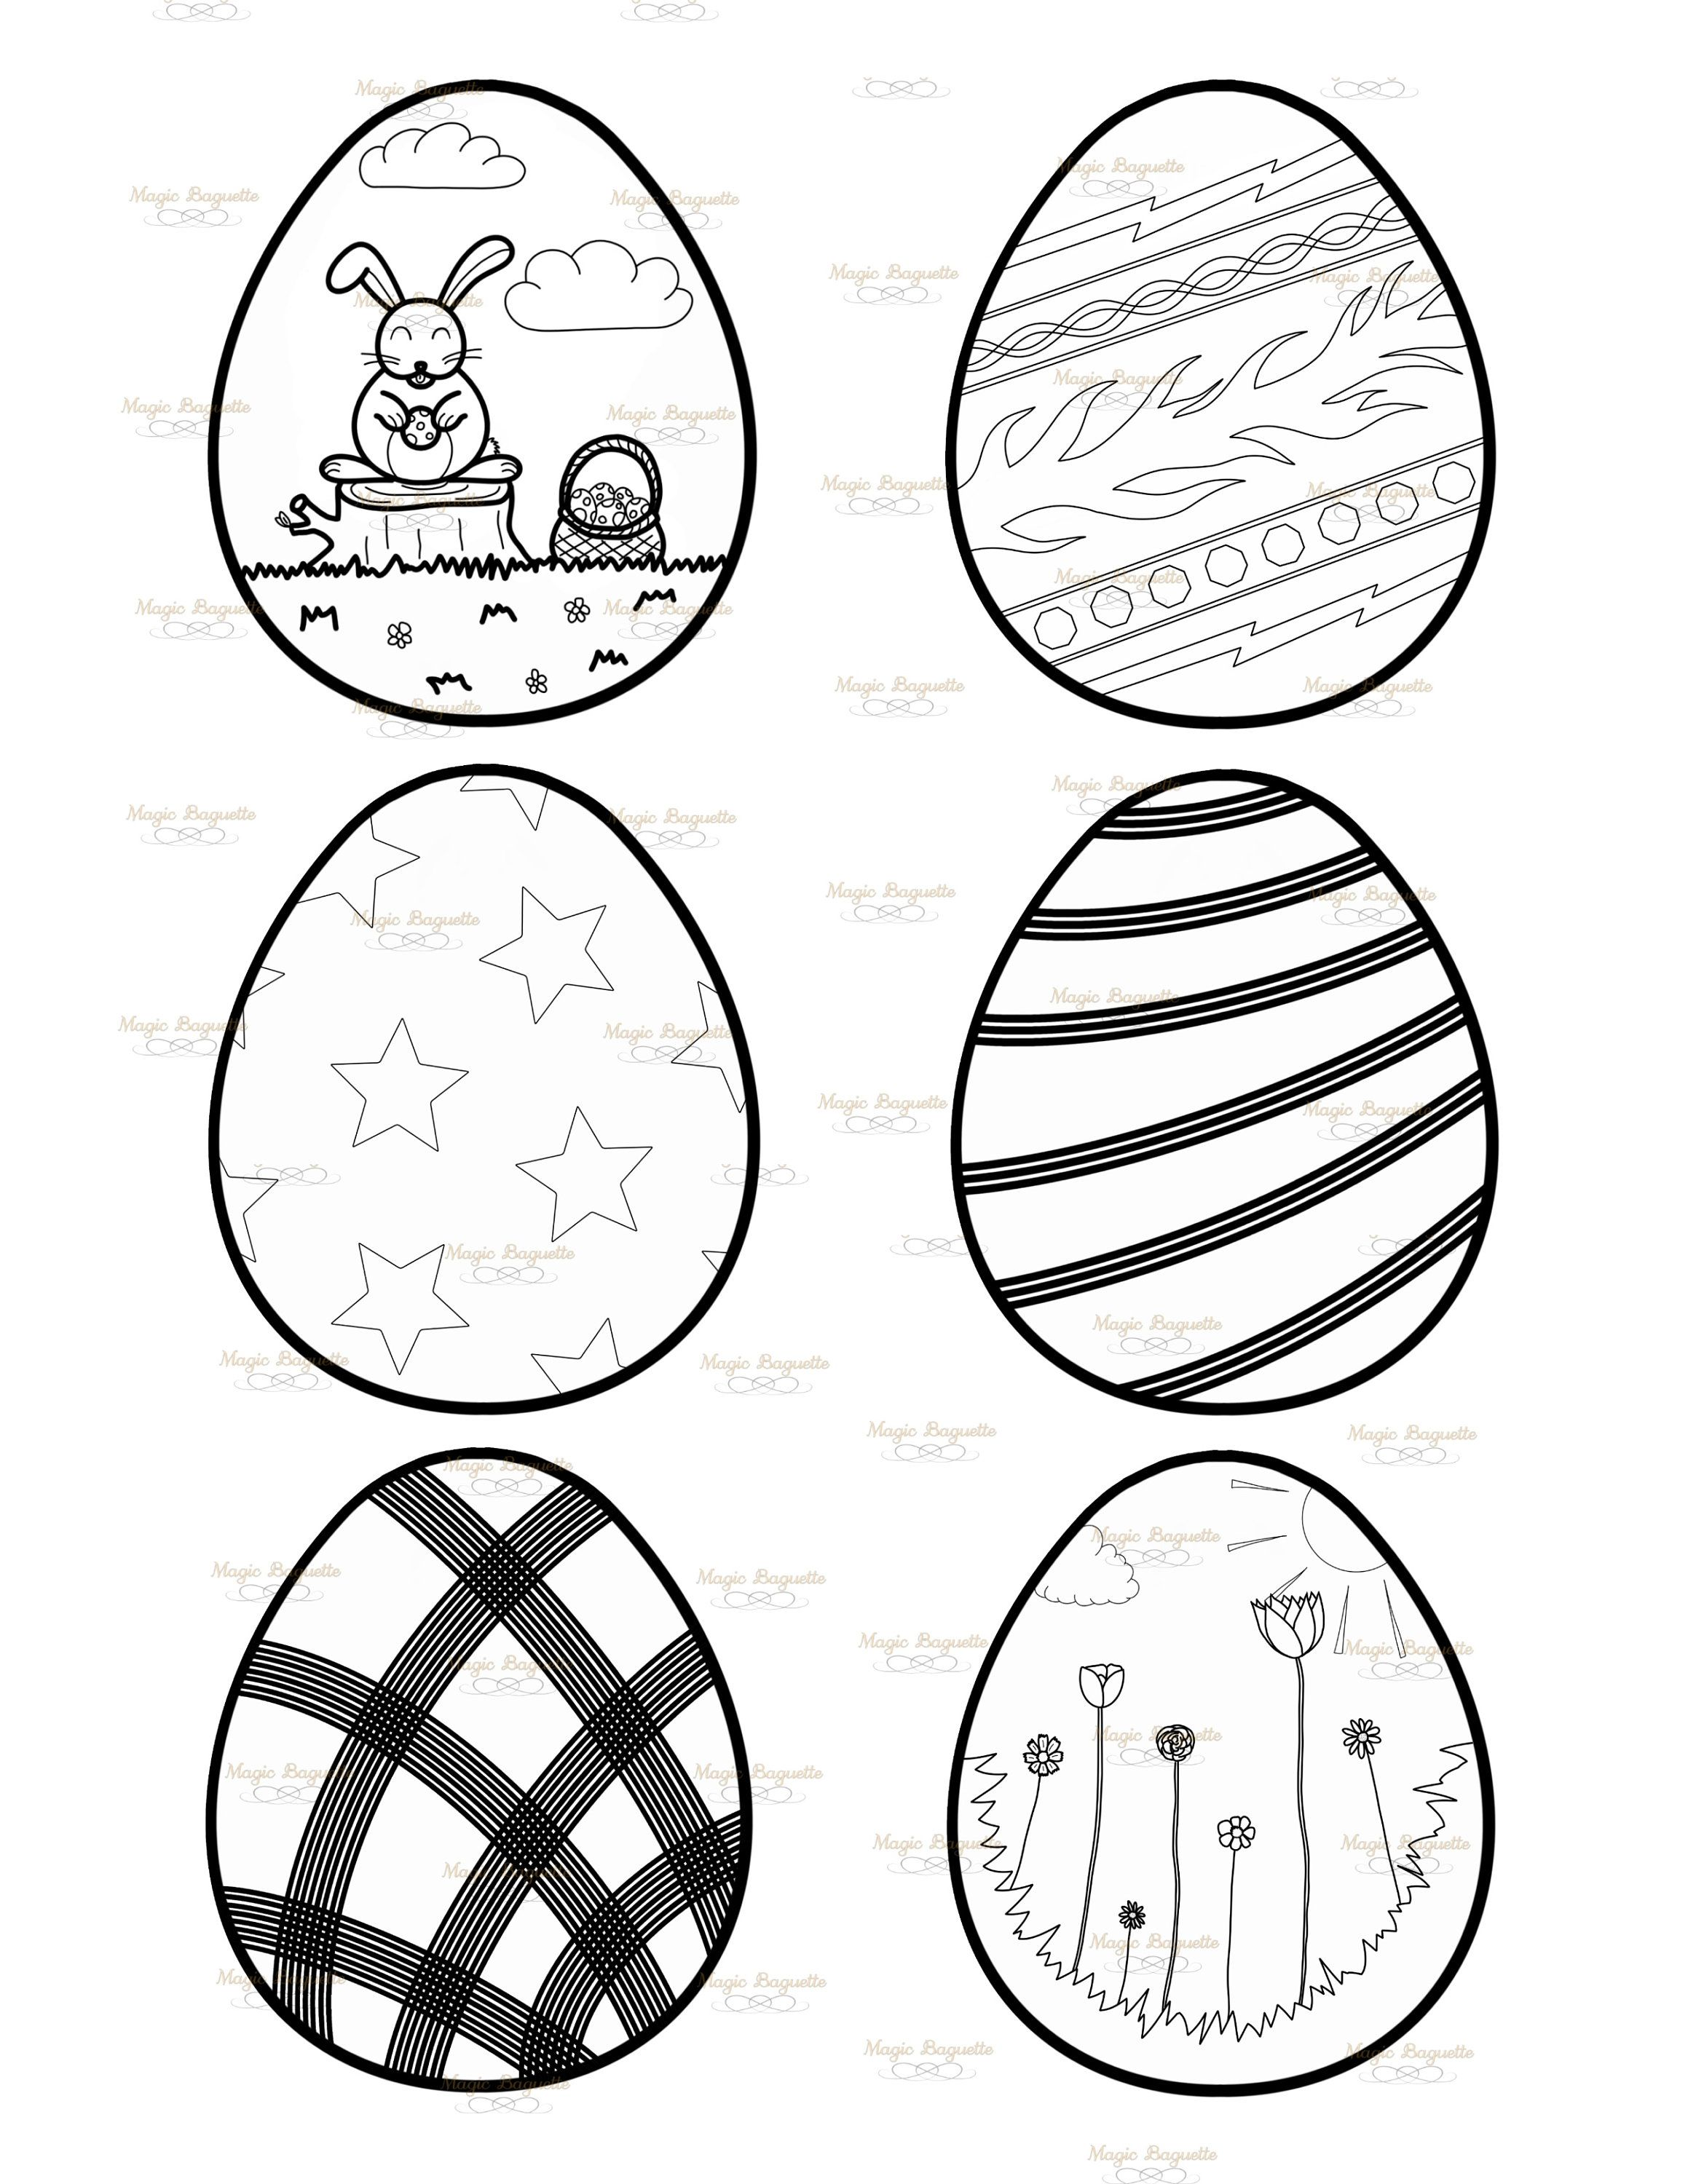 New Easter Eggs Coloring Page N 2 Coloring Sheet For Kids 8 5x11 Sheet 10x10 File For Each Egg In Png For Egg Hunt Stuck At Home In 2020